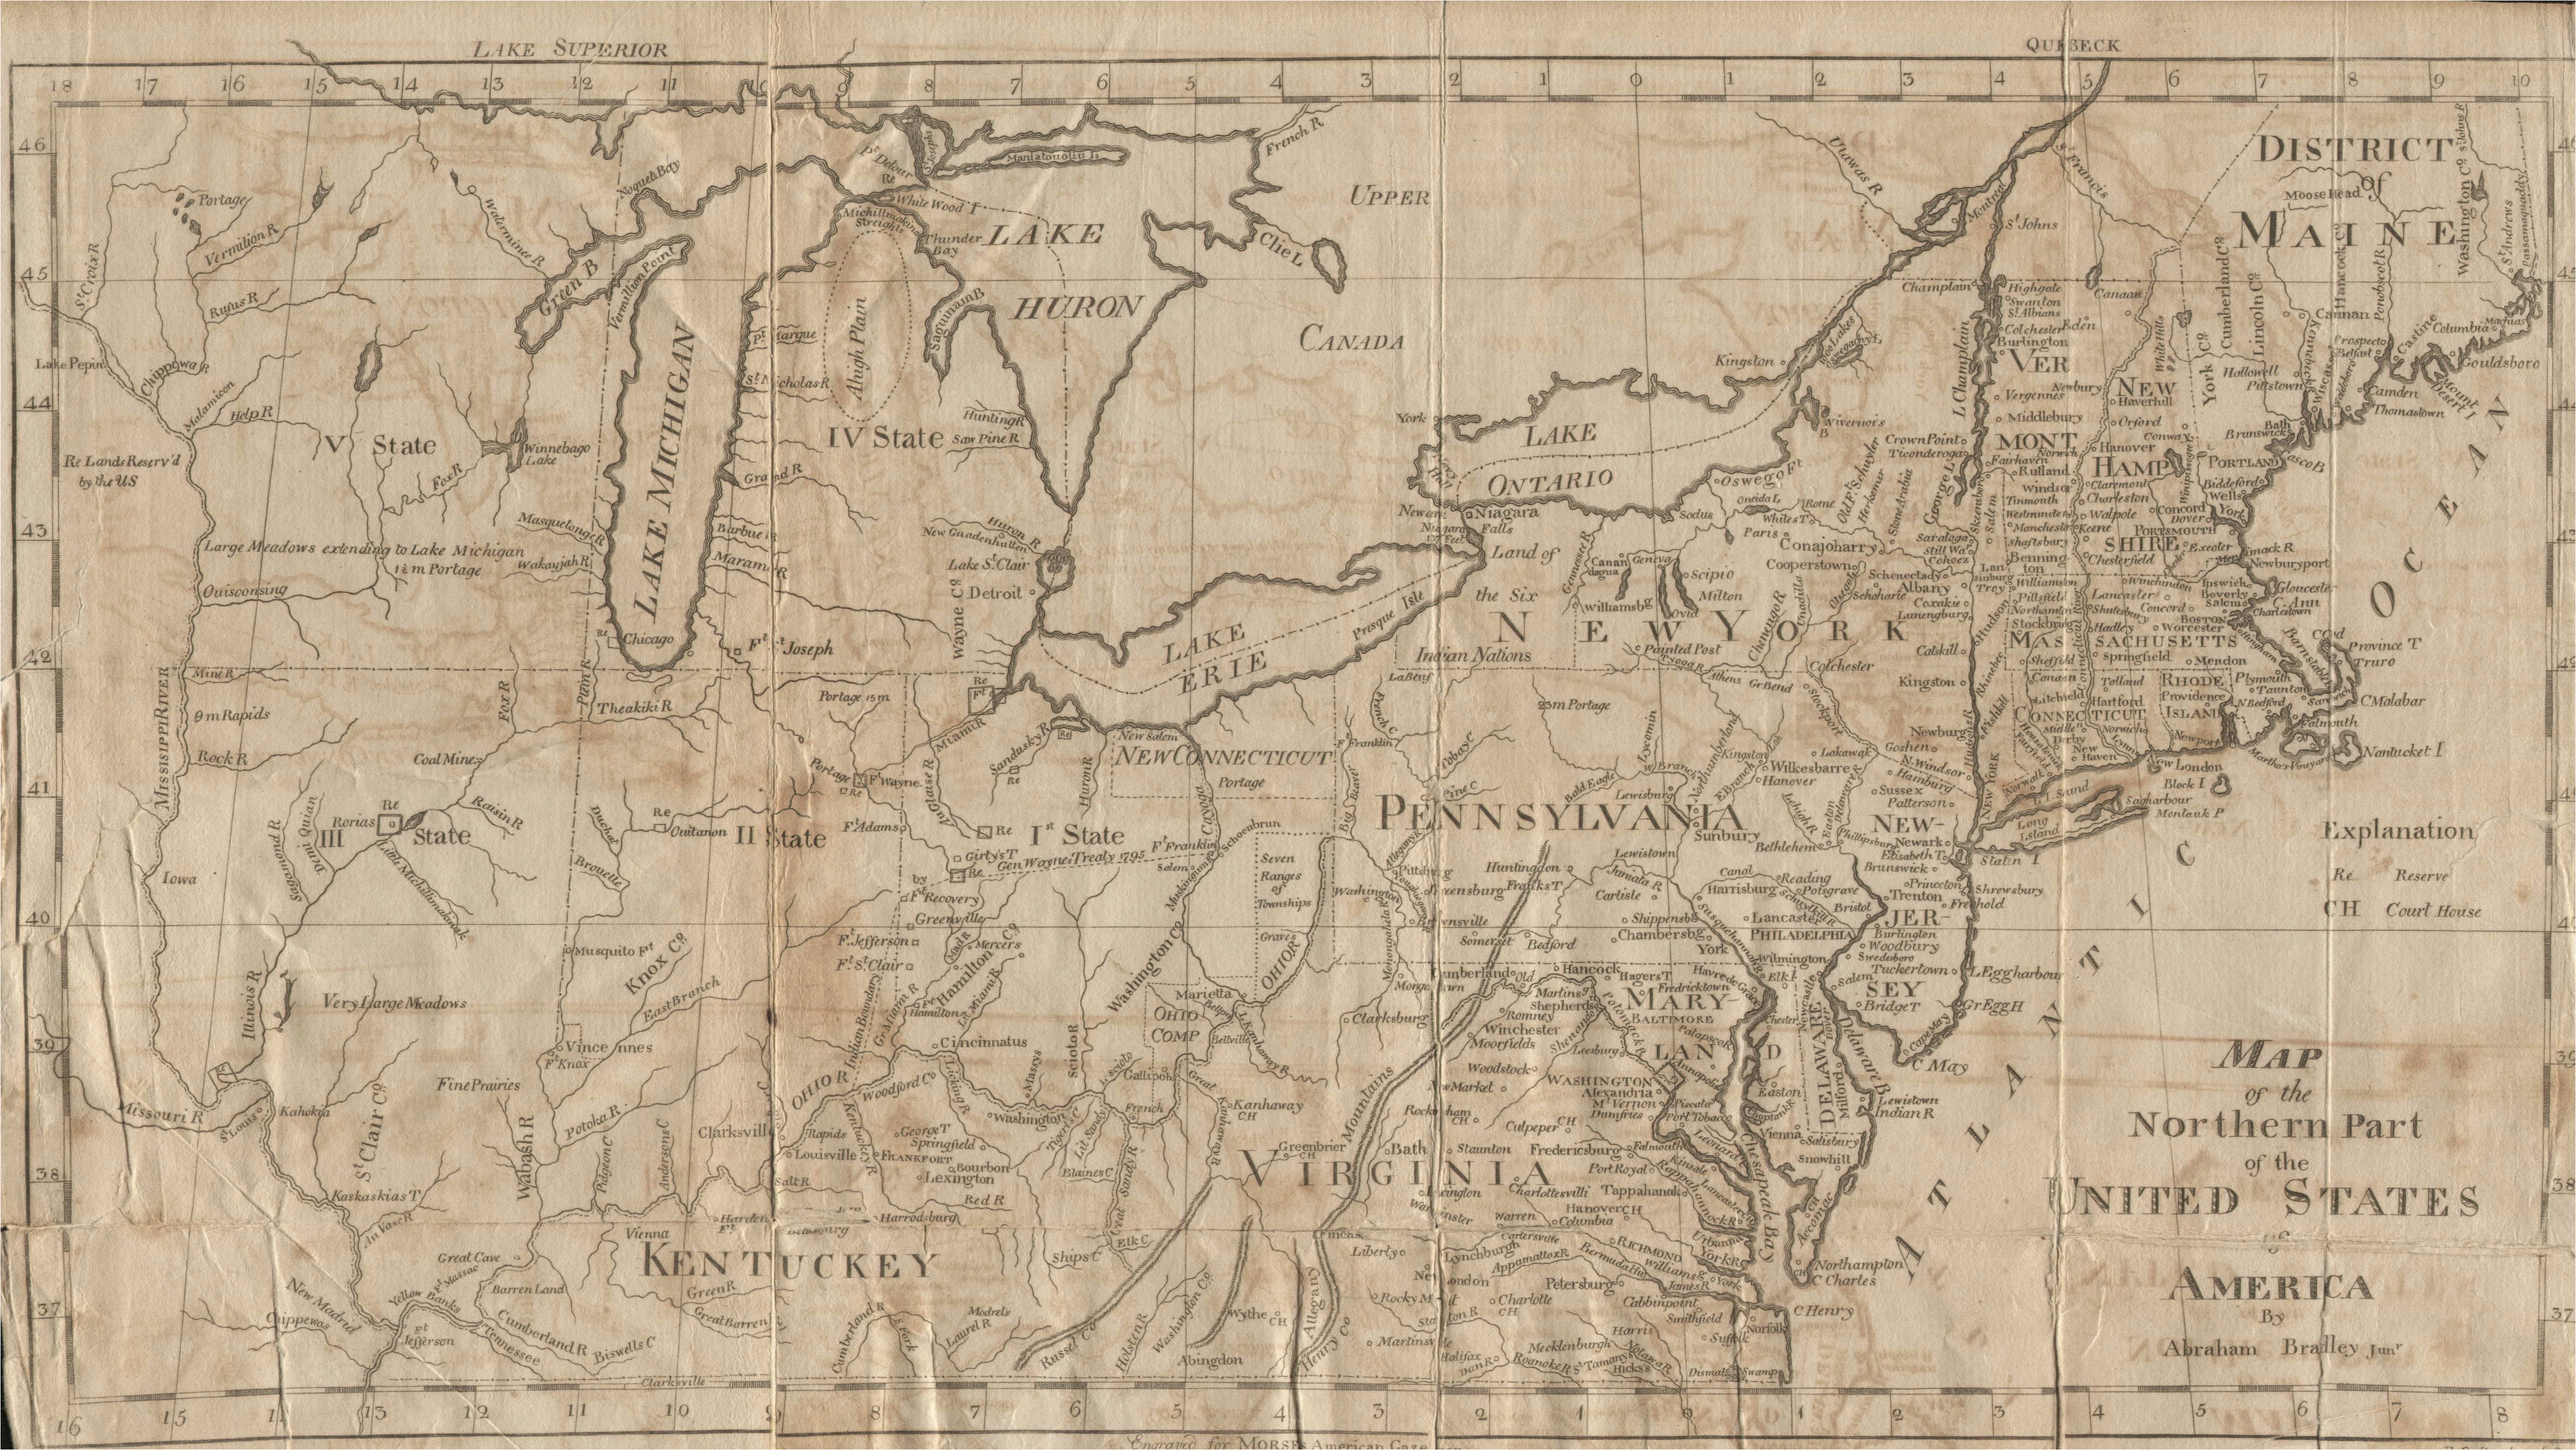 pin by joann hague on history maps american frontier american